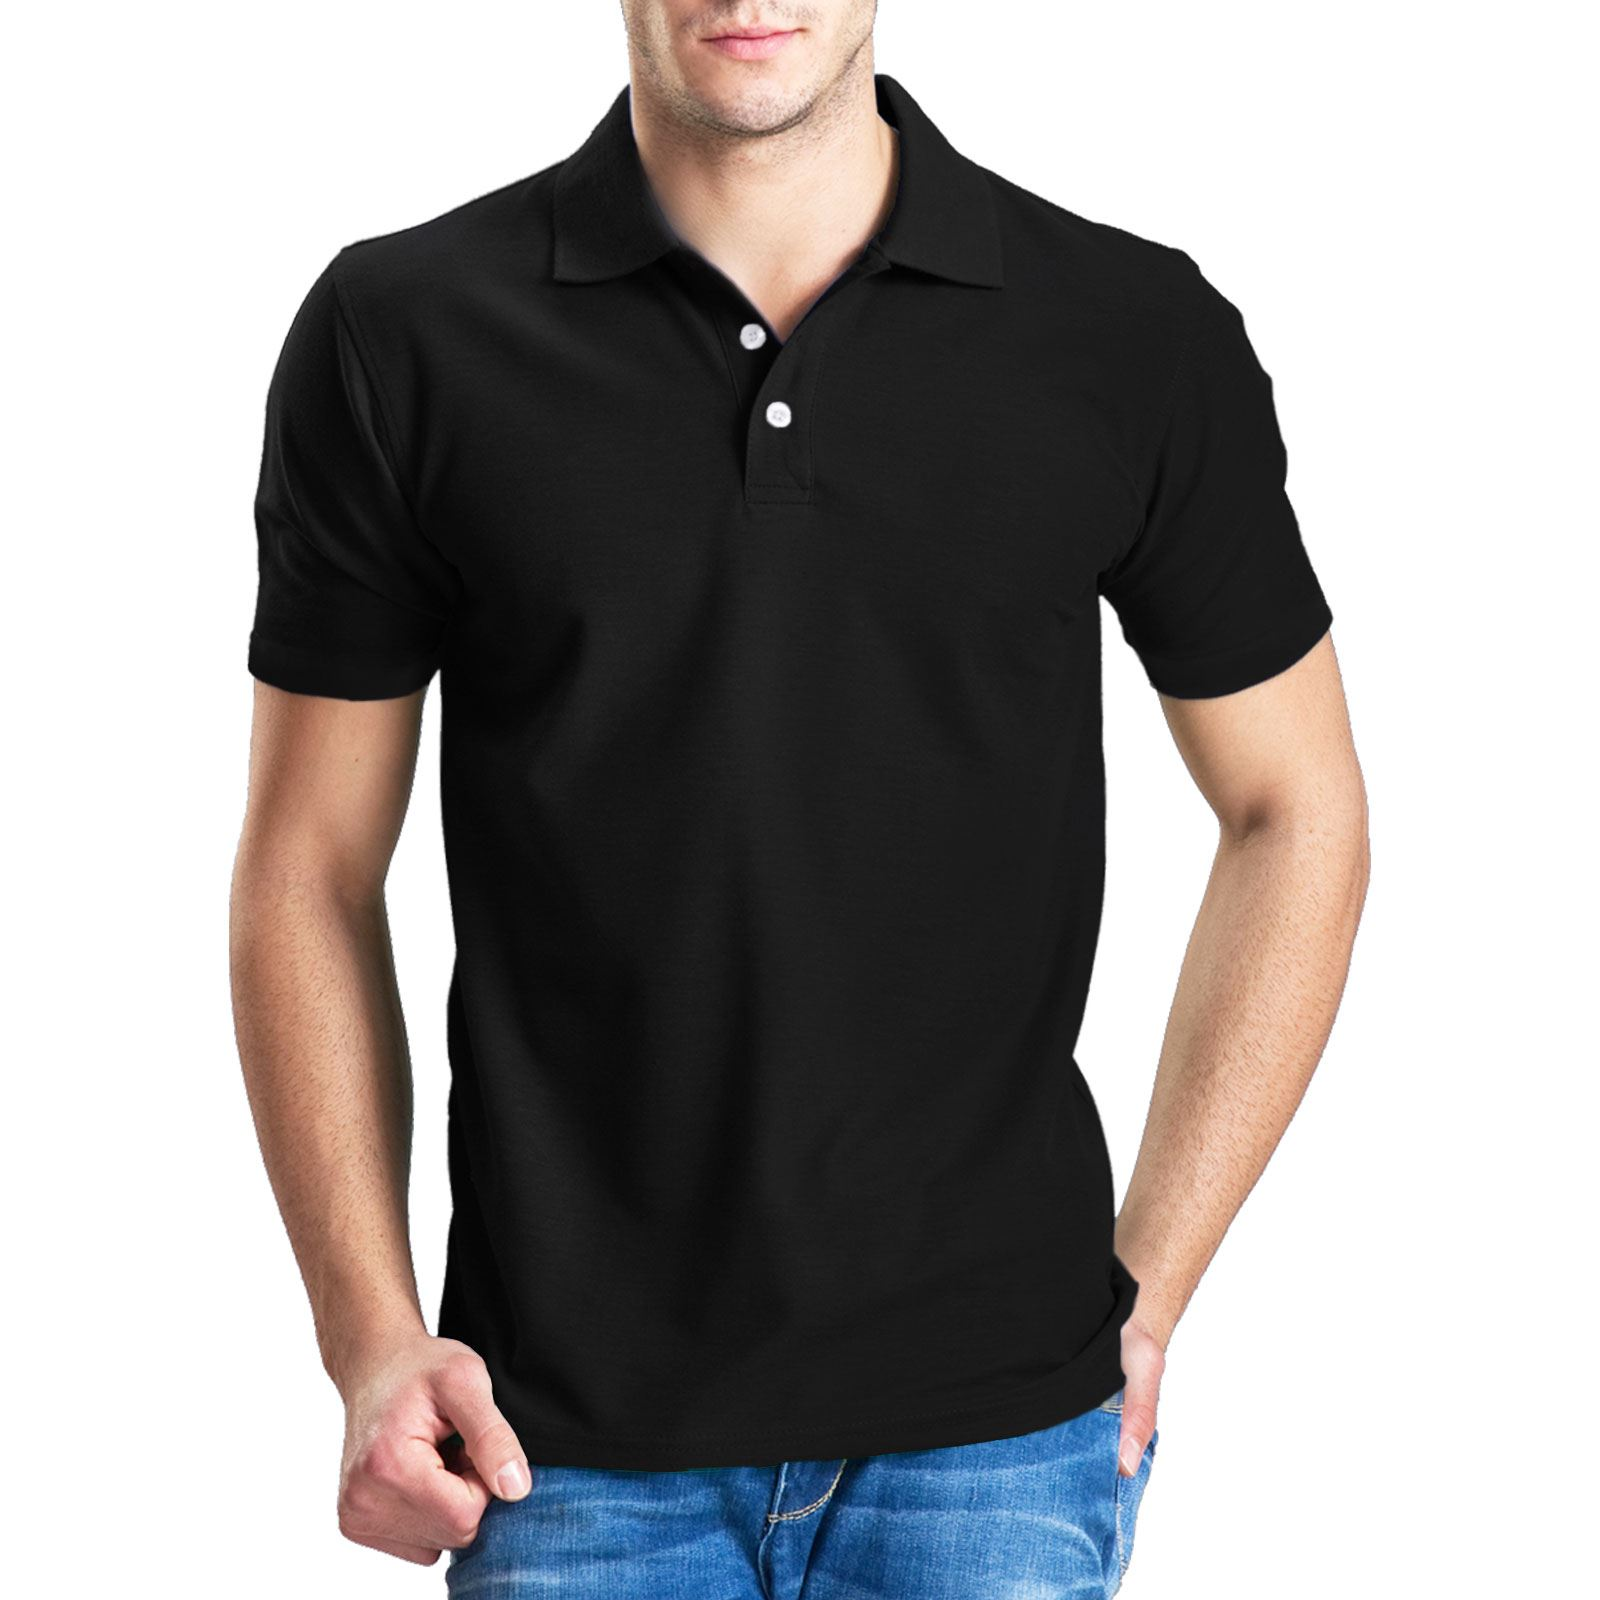 Mens plain poly cotton pique polo t shirt ribbed collar for Mens collared t shirts